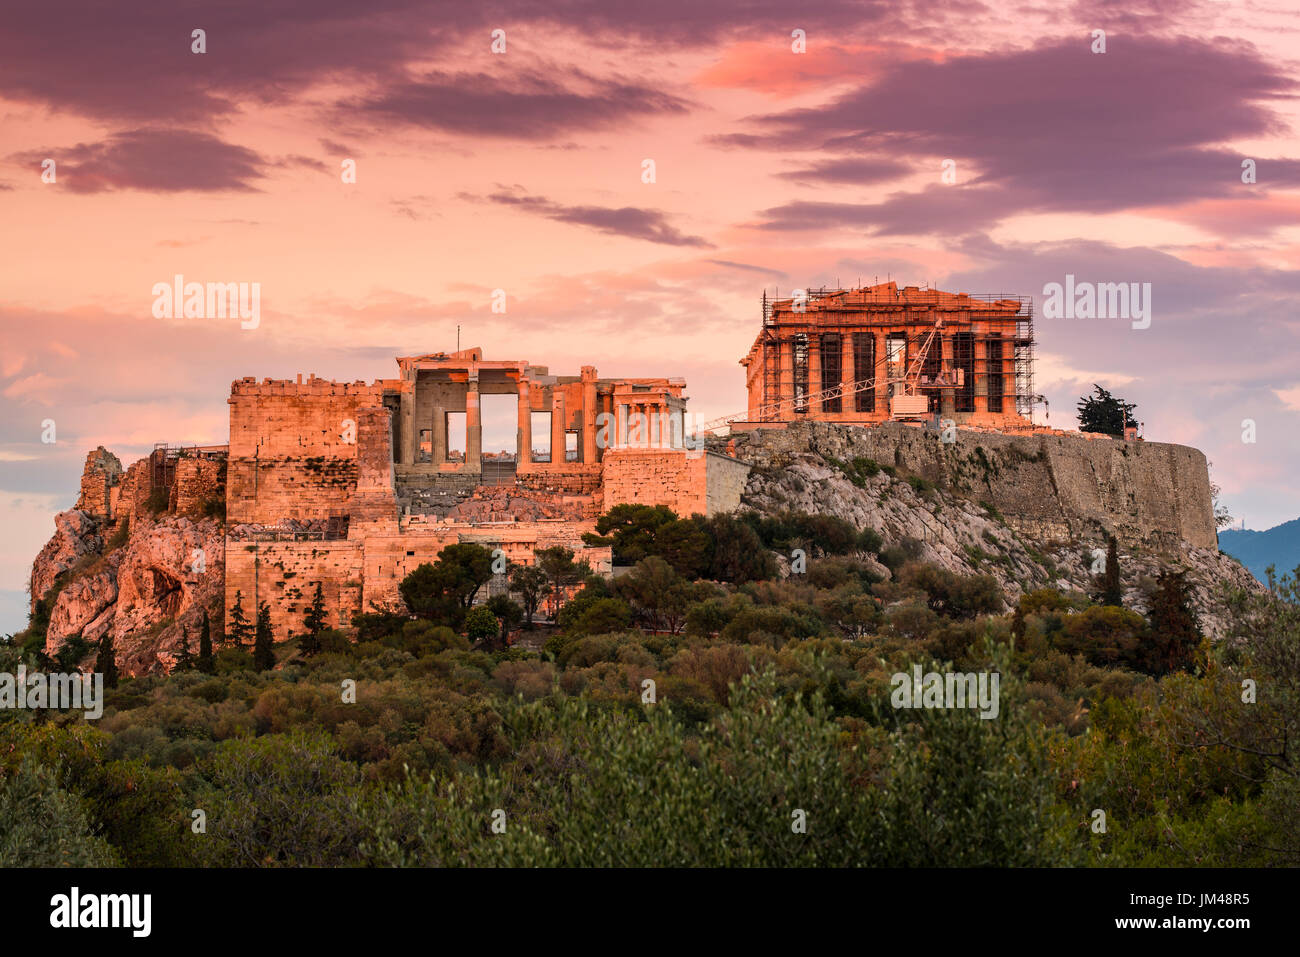 Sunset view of Acropolis, Athens, Attica, Greece - Stock Image